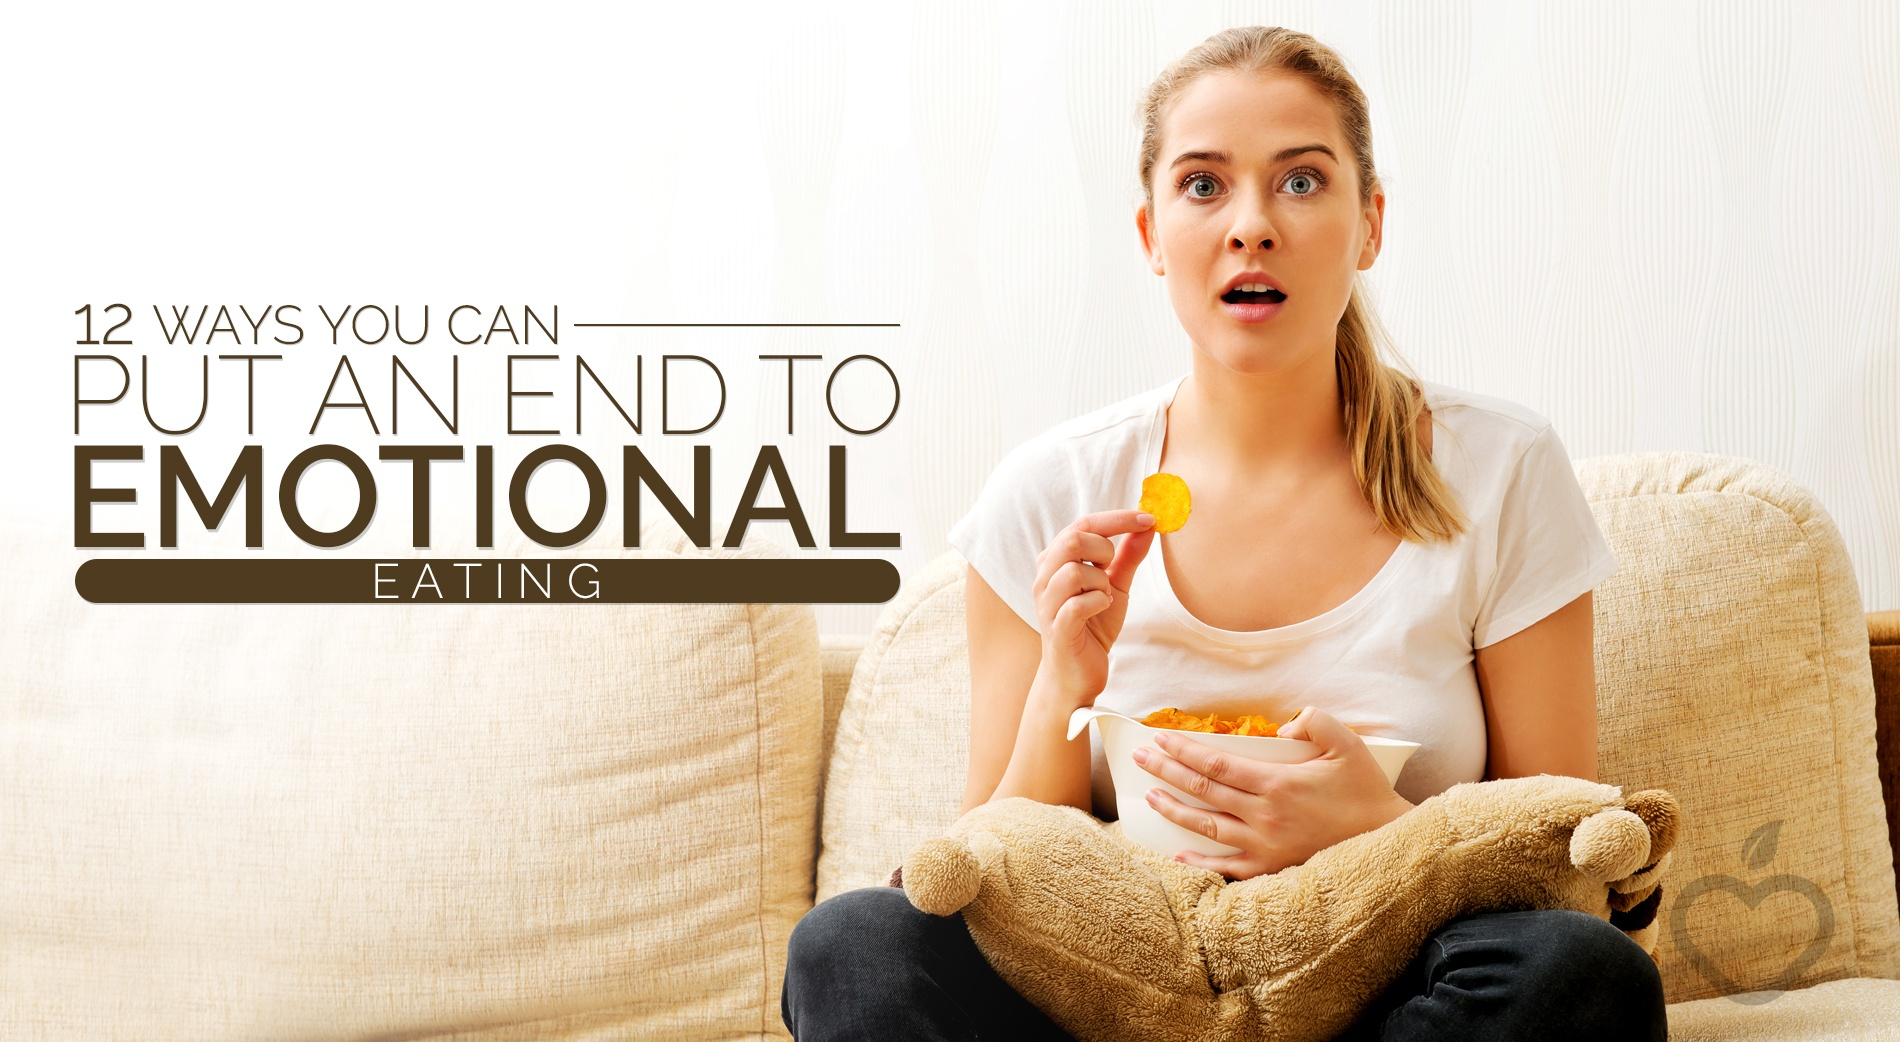 How to Eat for Emotional Health